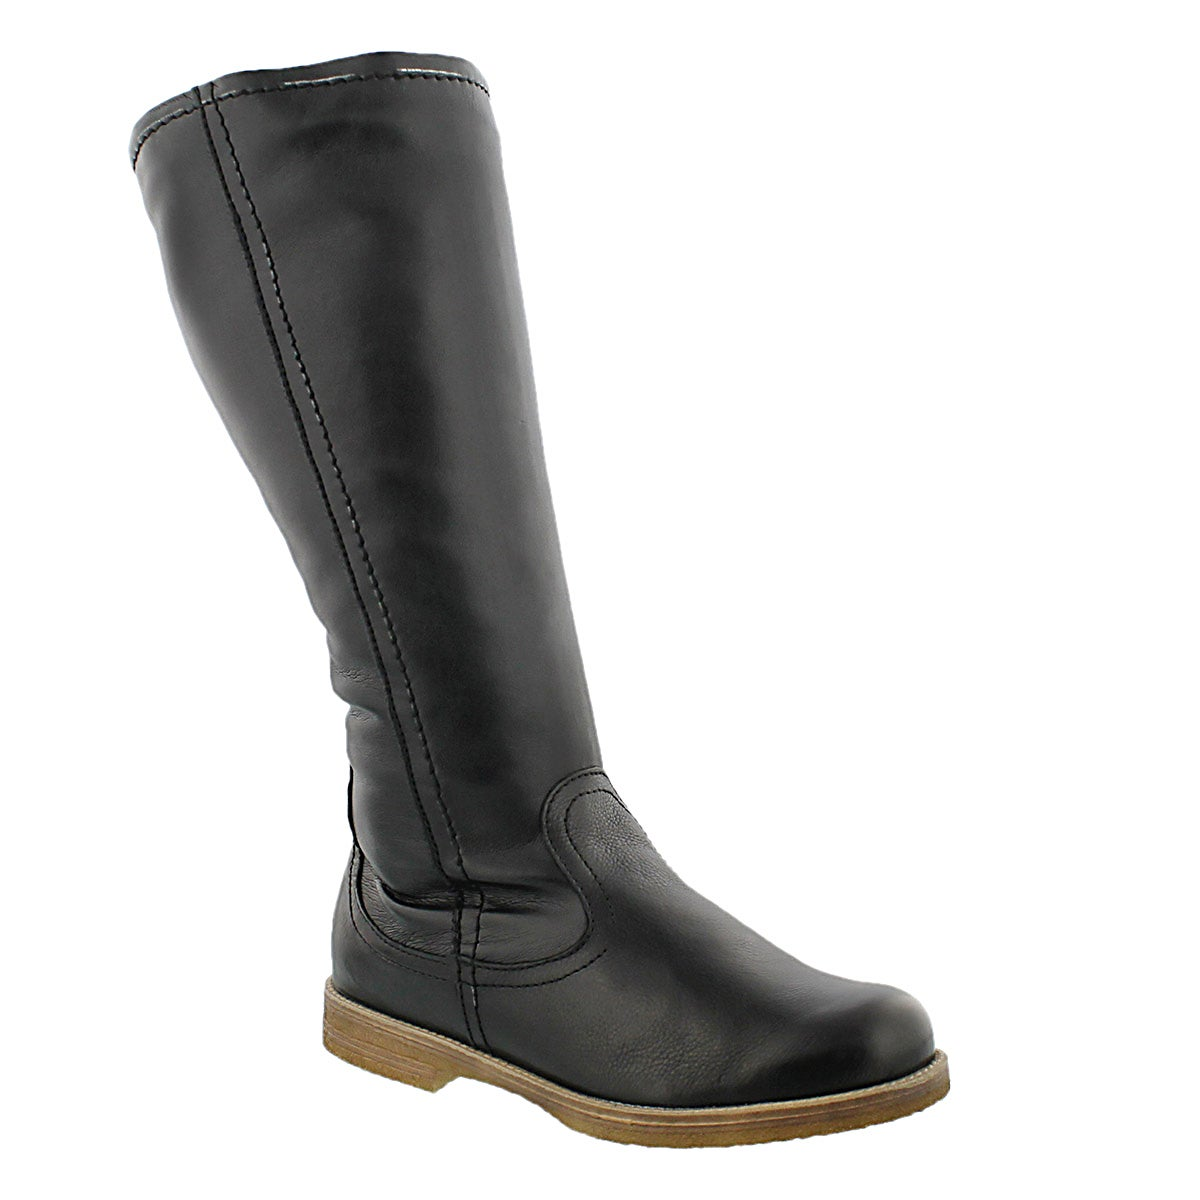 Women's TAMARA 03 black leather casual tall boots